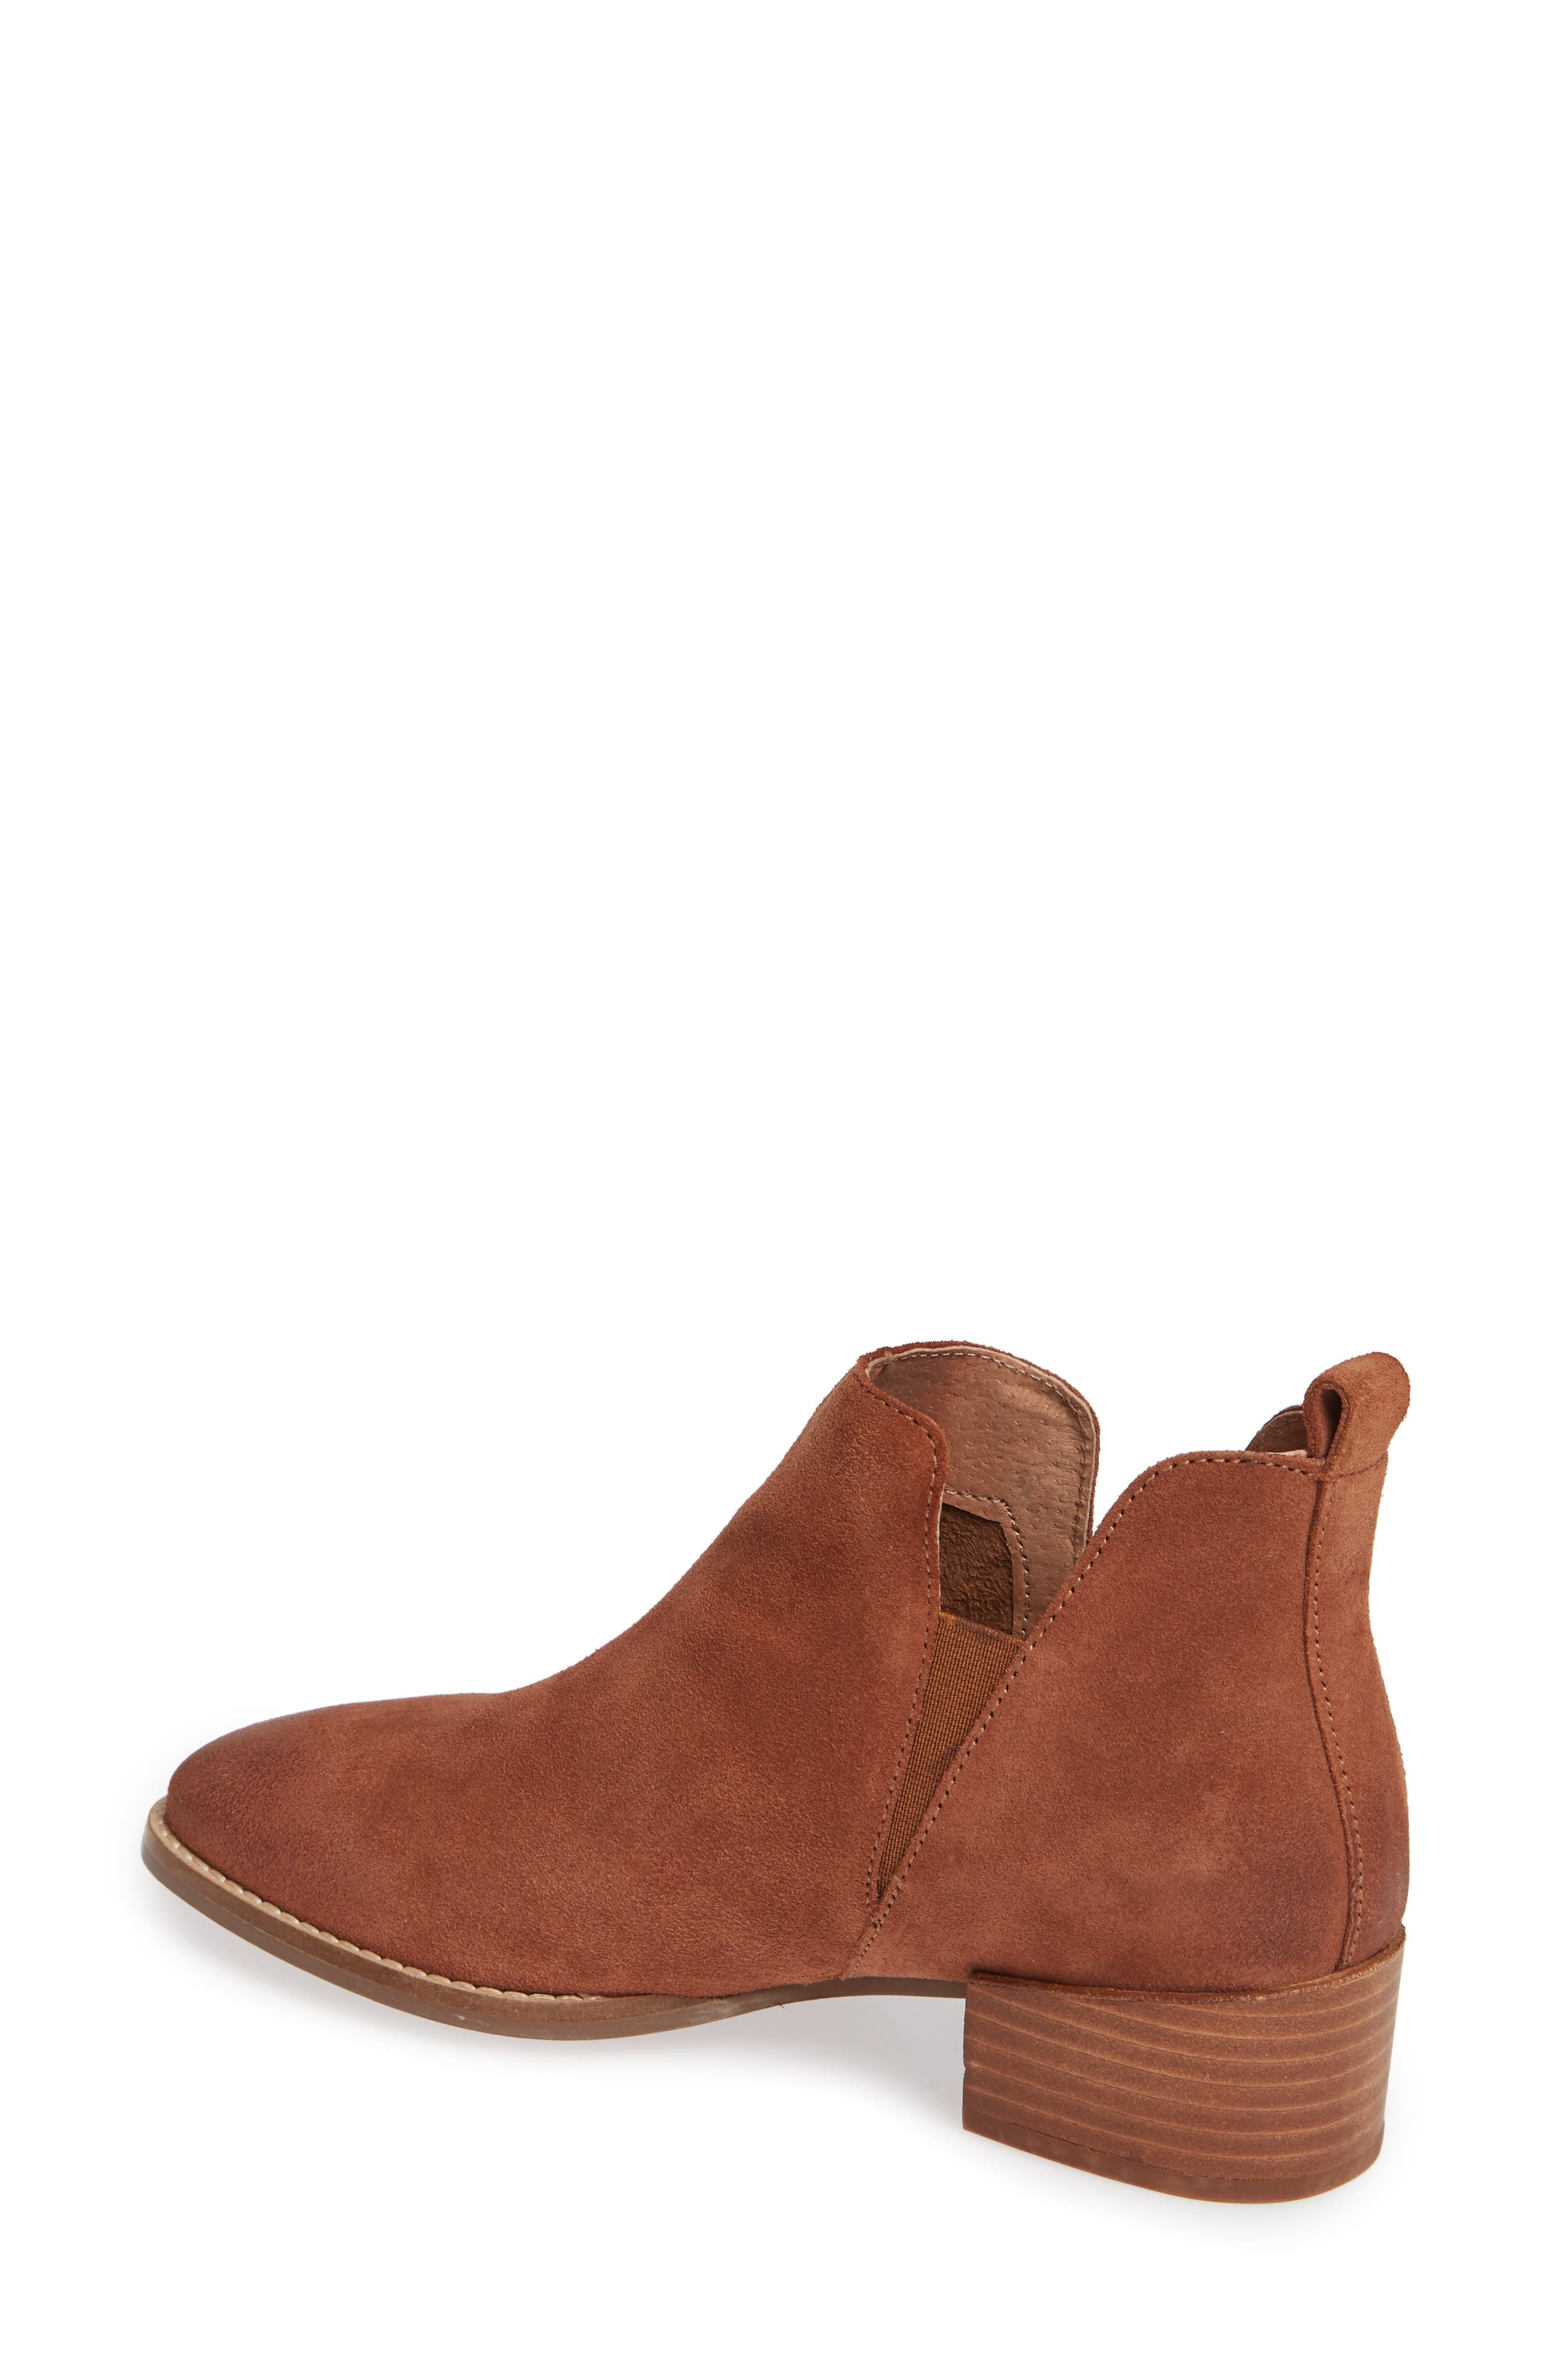 Offstage Boot,                             Alternate thumbnail 2, color,                             COGNAC SUEDE